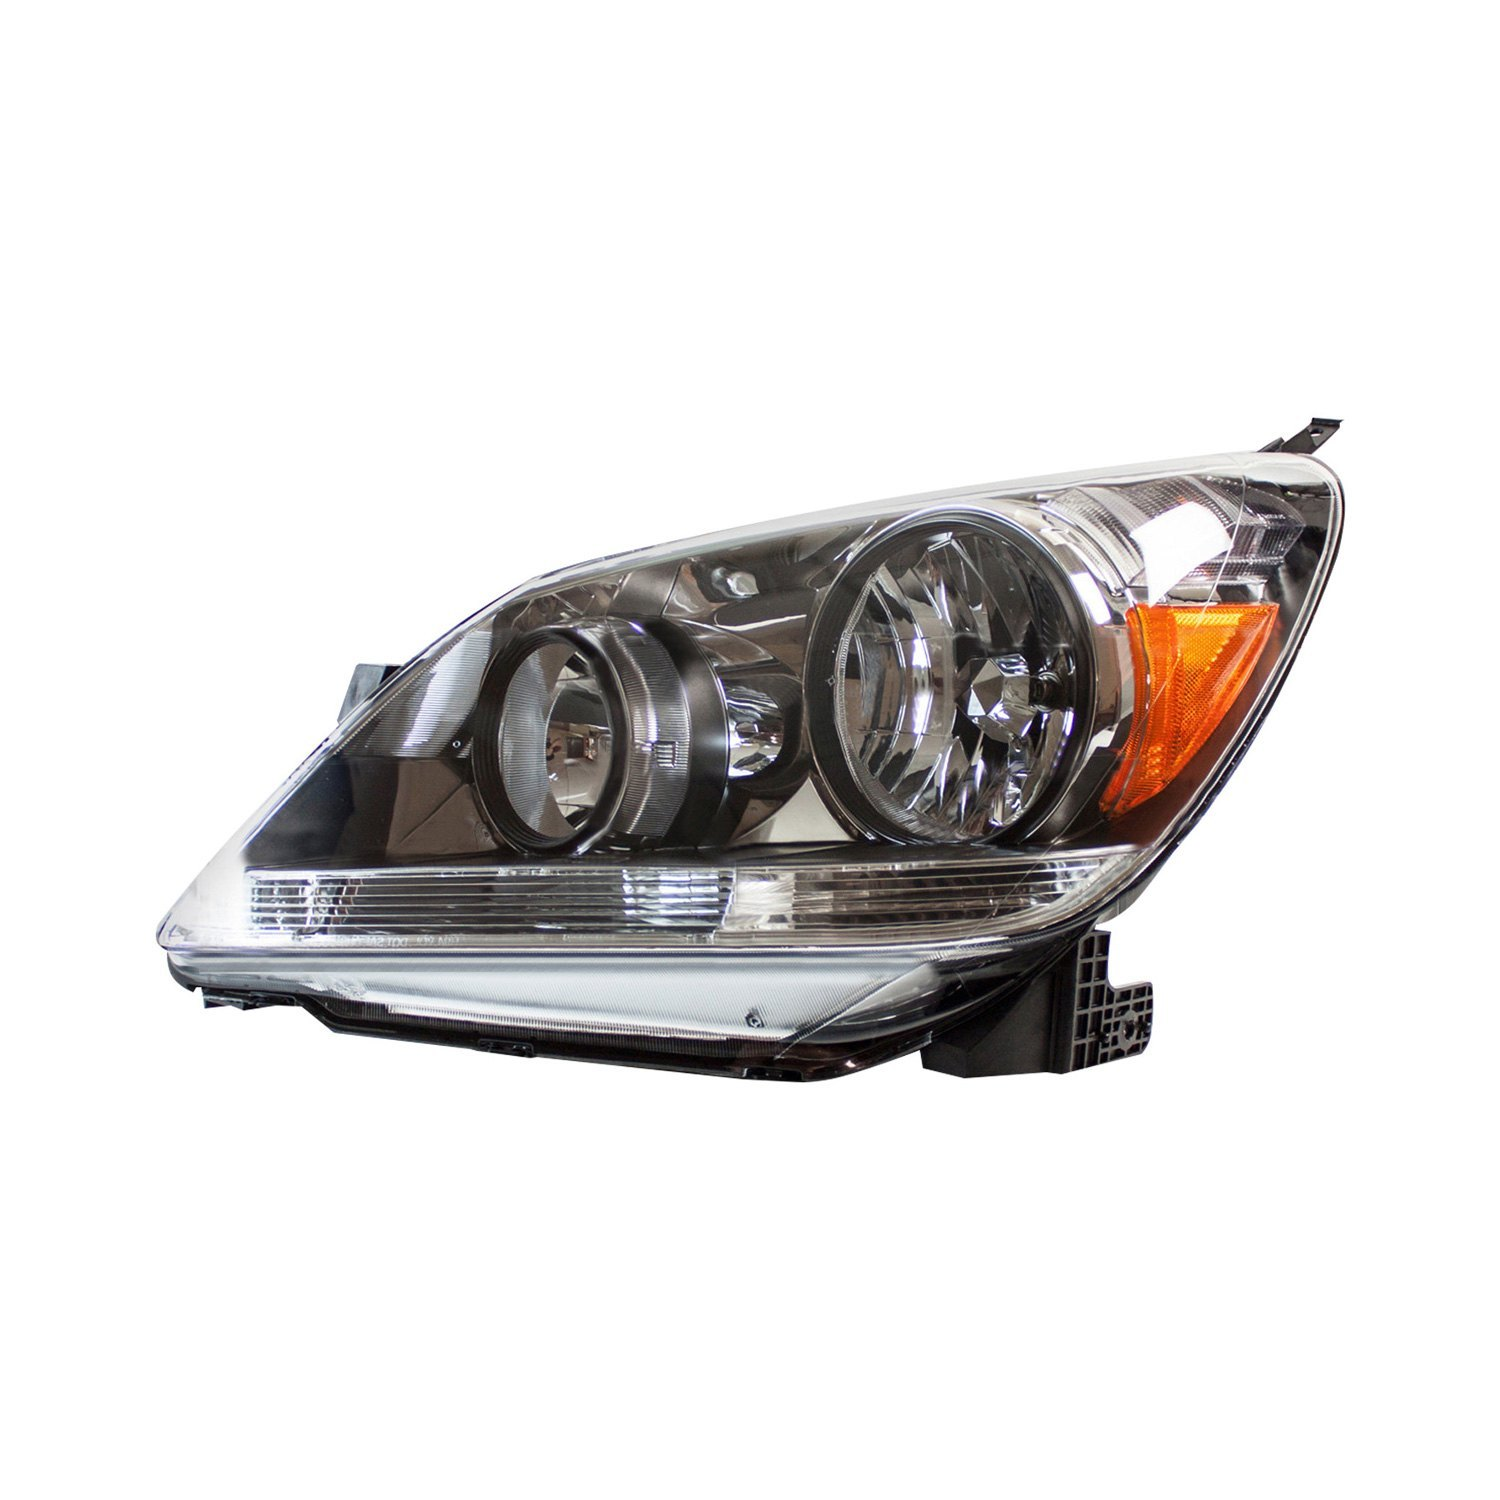 For Honda Odyssey 2005 2007 Tyc 20 6624 00 1 Driver Side Replacement Headlight Ebay